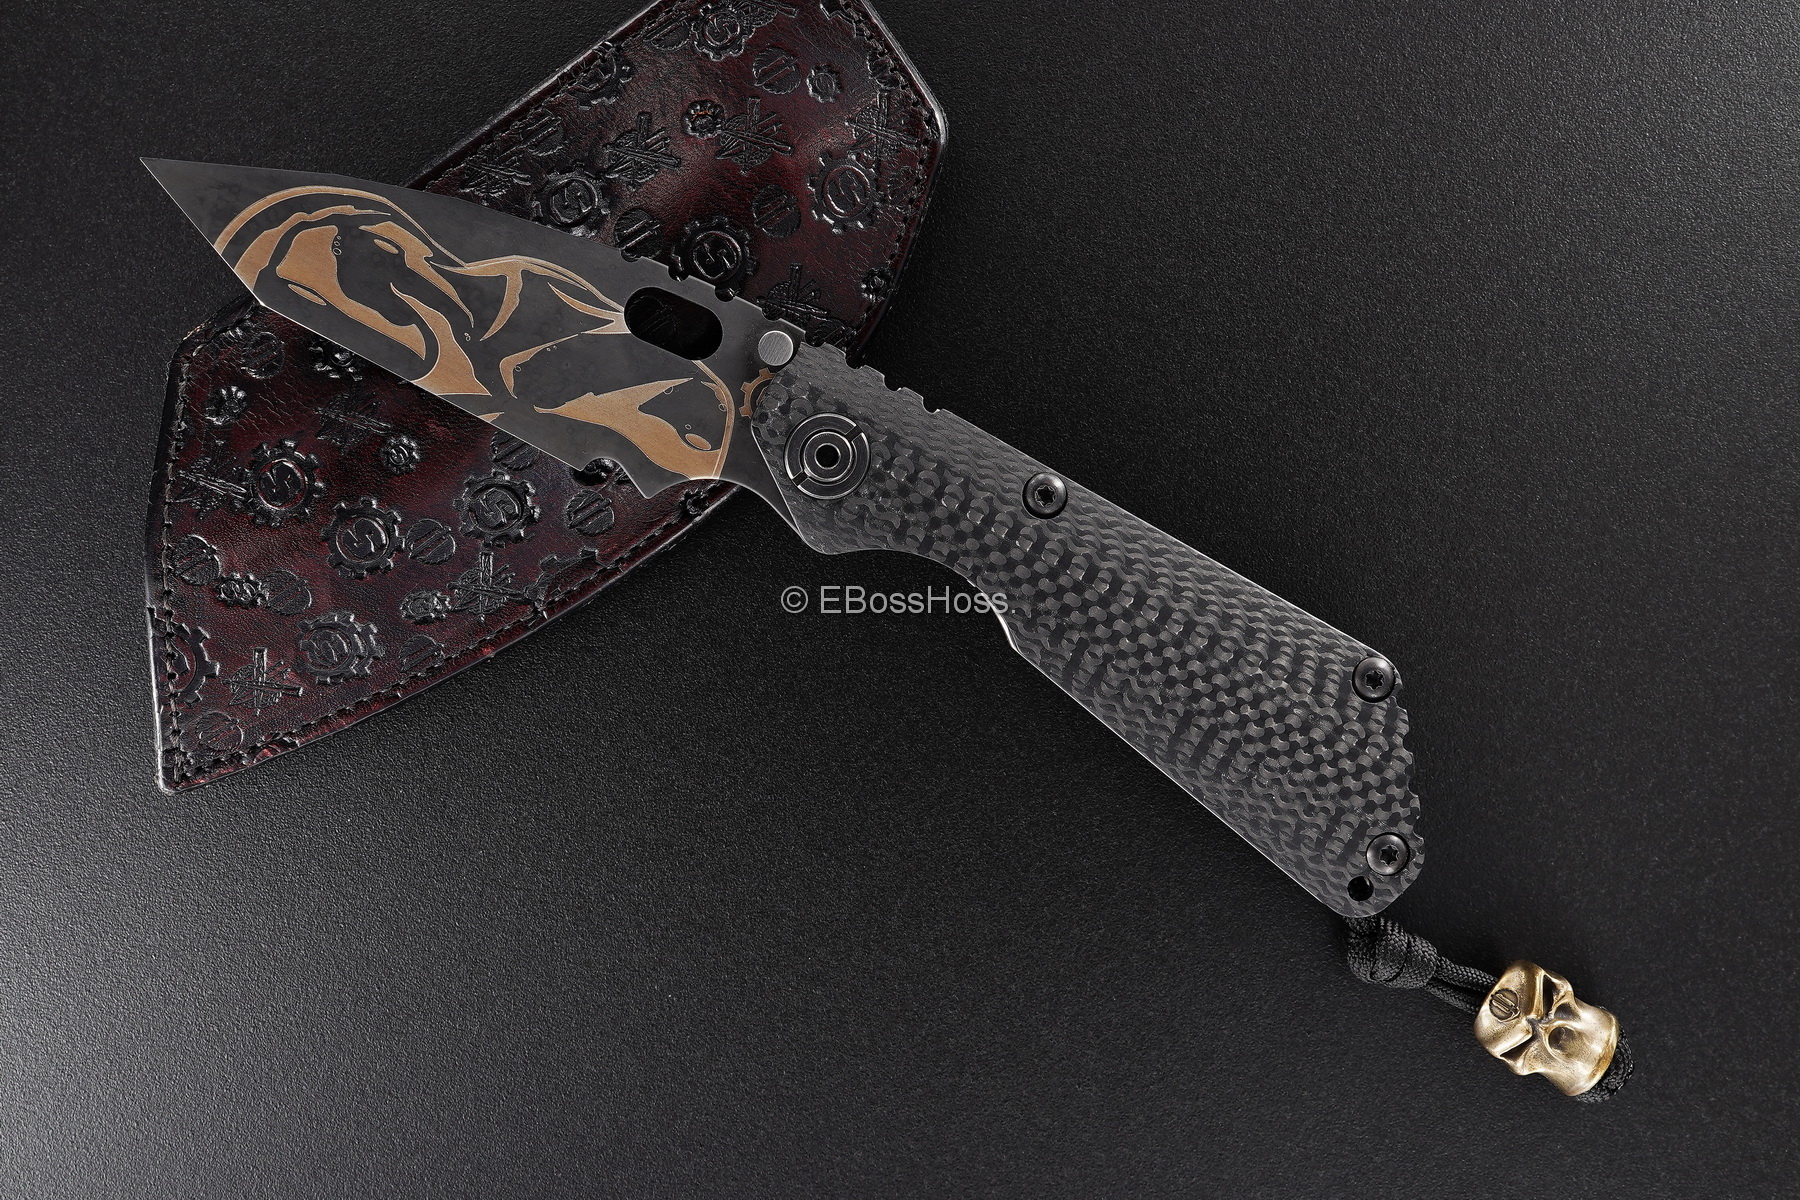 Duane Dwyer, Starlingear, Strider Starlingear Stealth DDC SnG Limited Edition (Just 25)